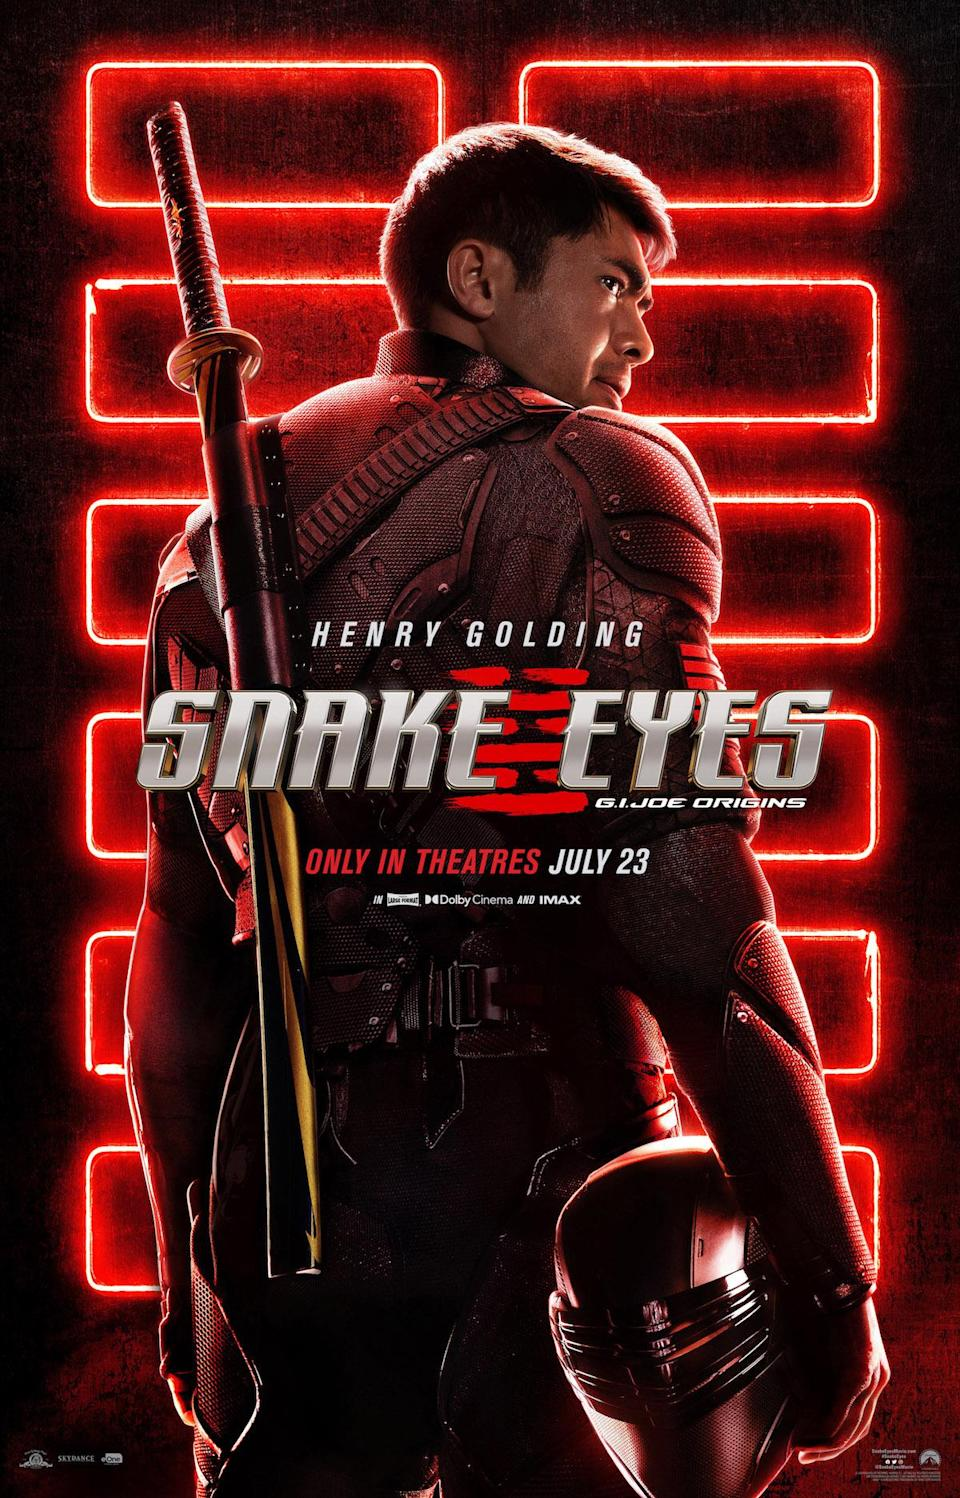 Henry Golding in a red suit with a katana looks back at the camera in the Snake Eyes poster